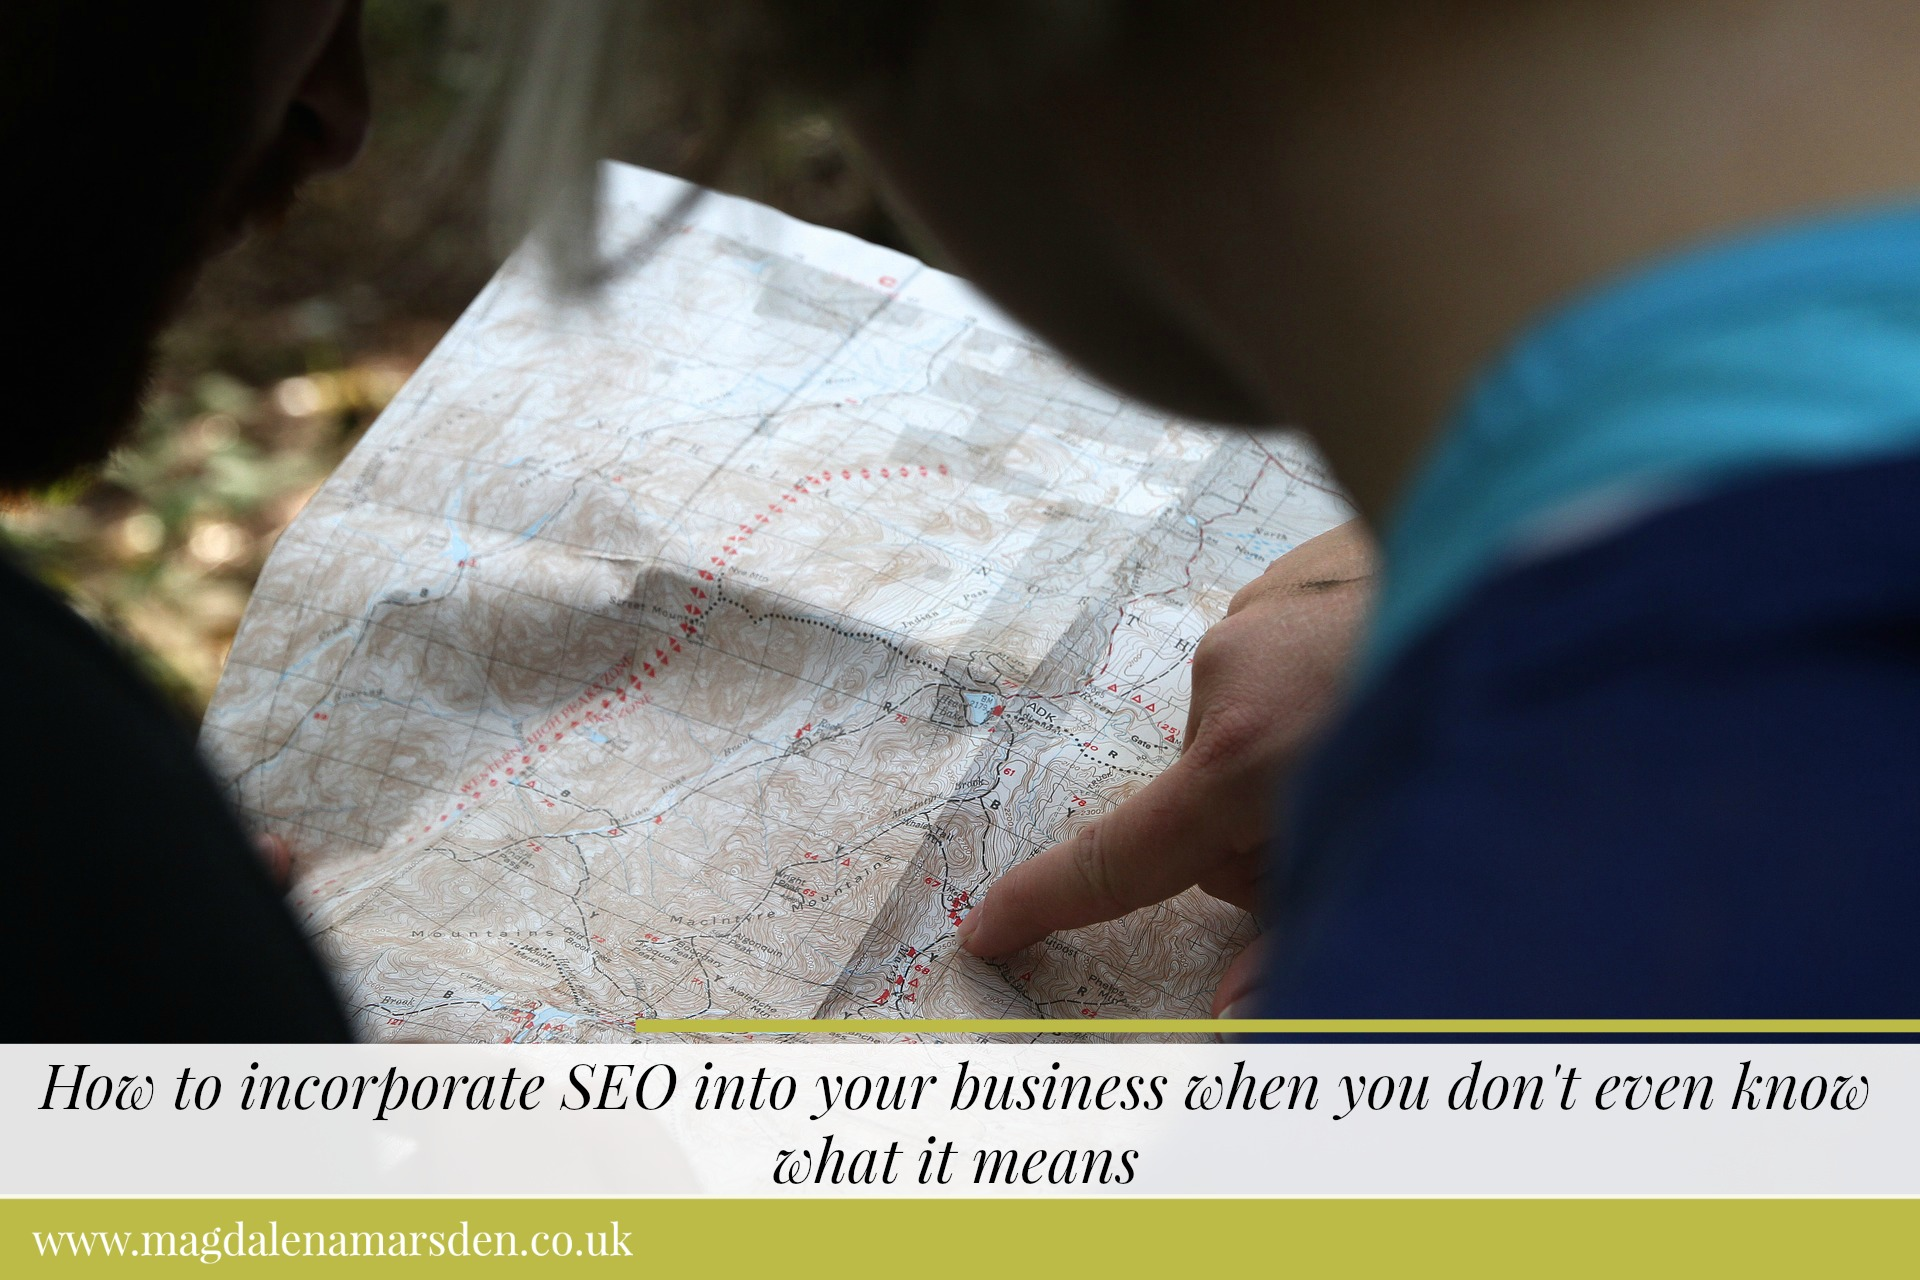 How to incorporate SEO into your business when you don't even know that it means